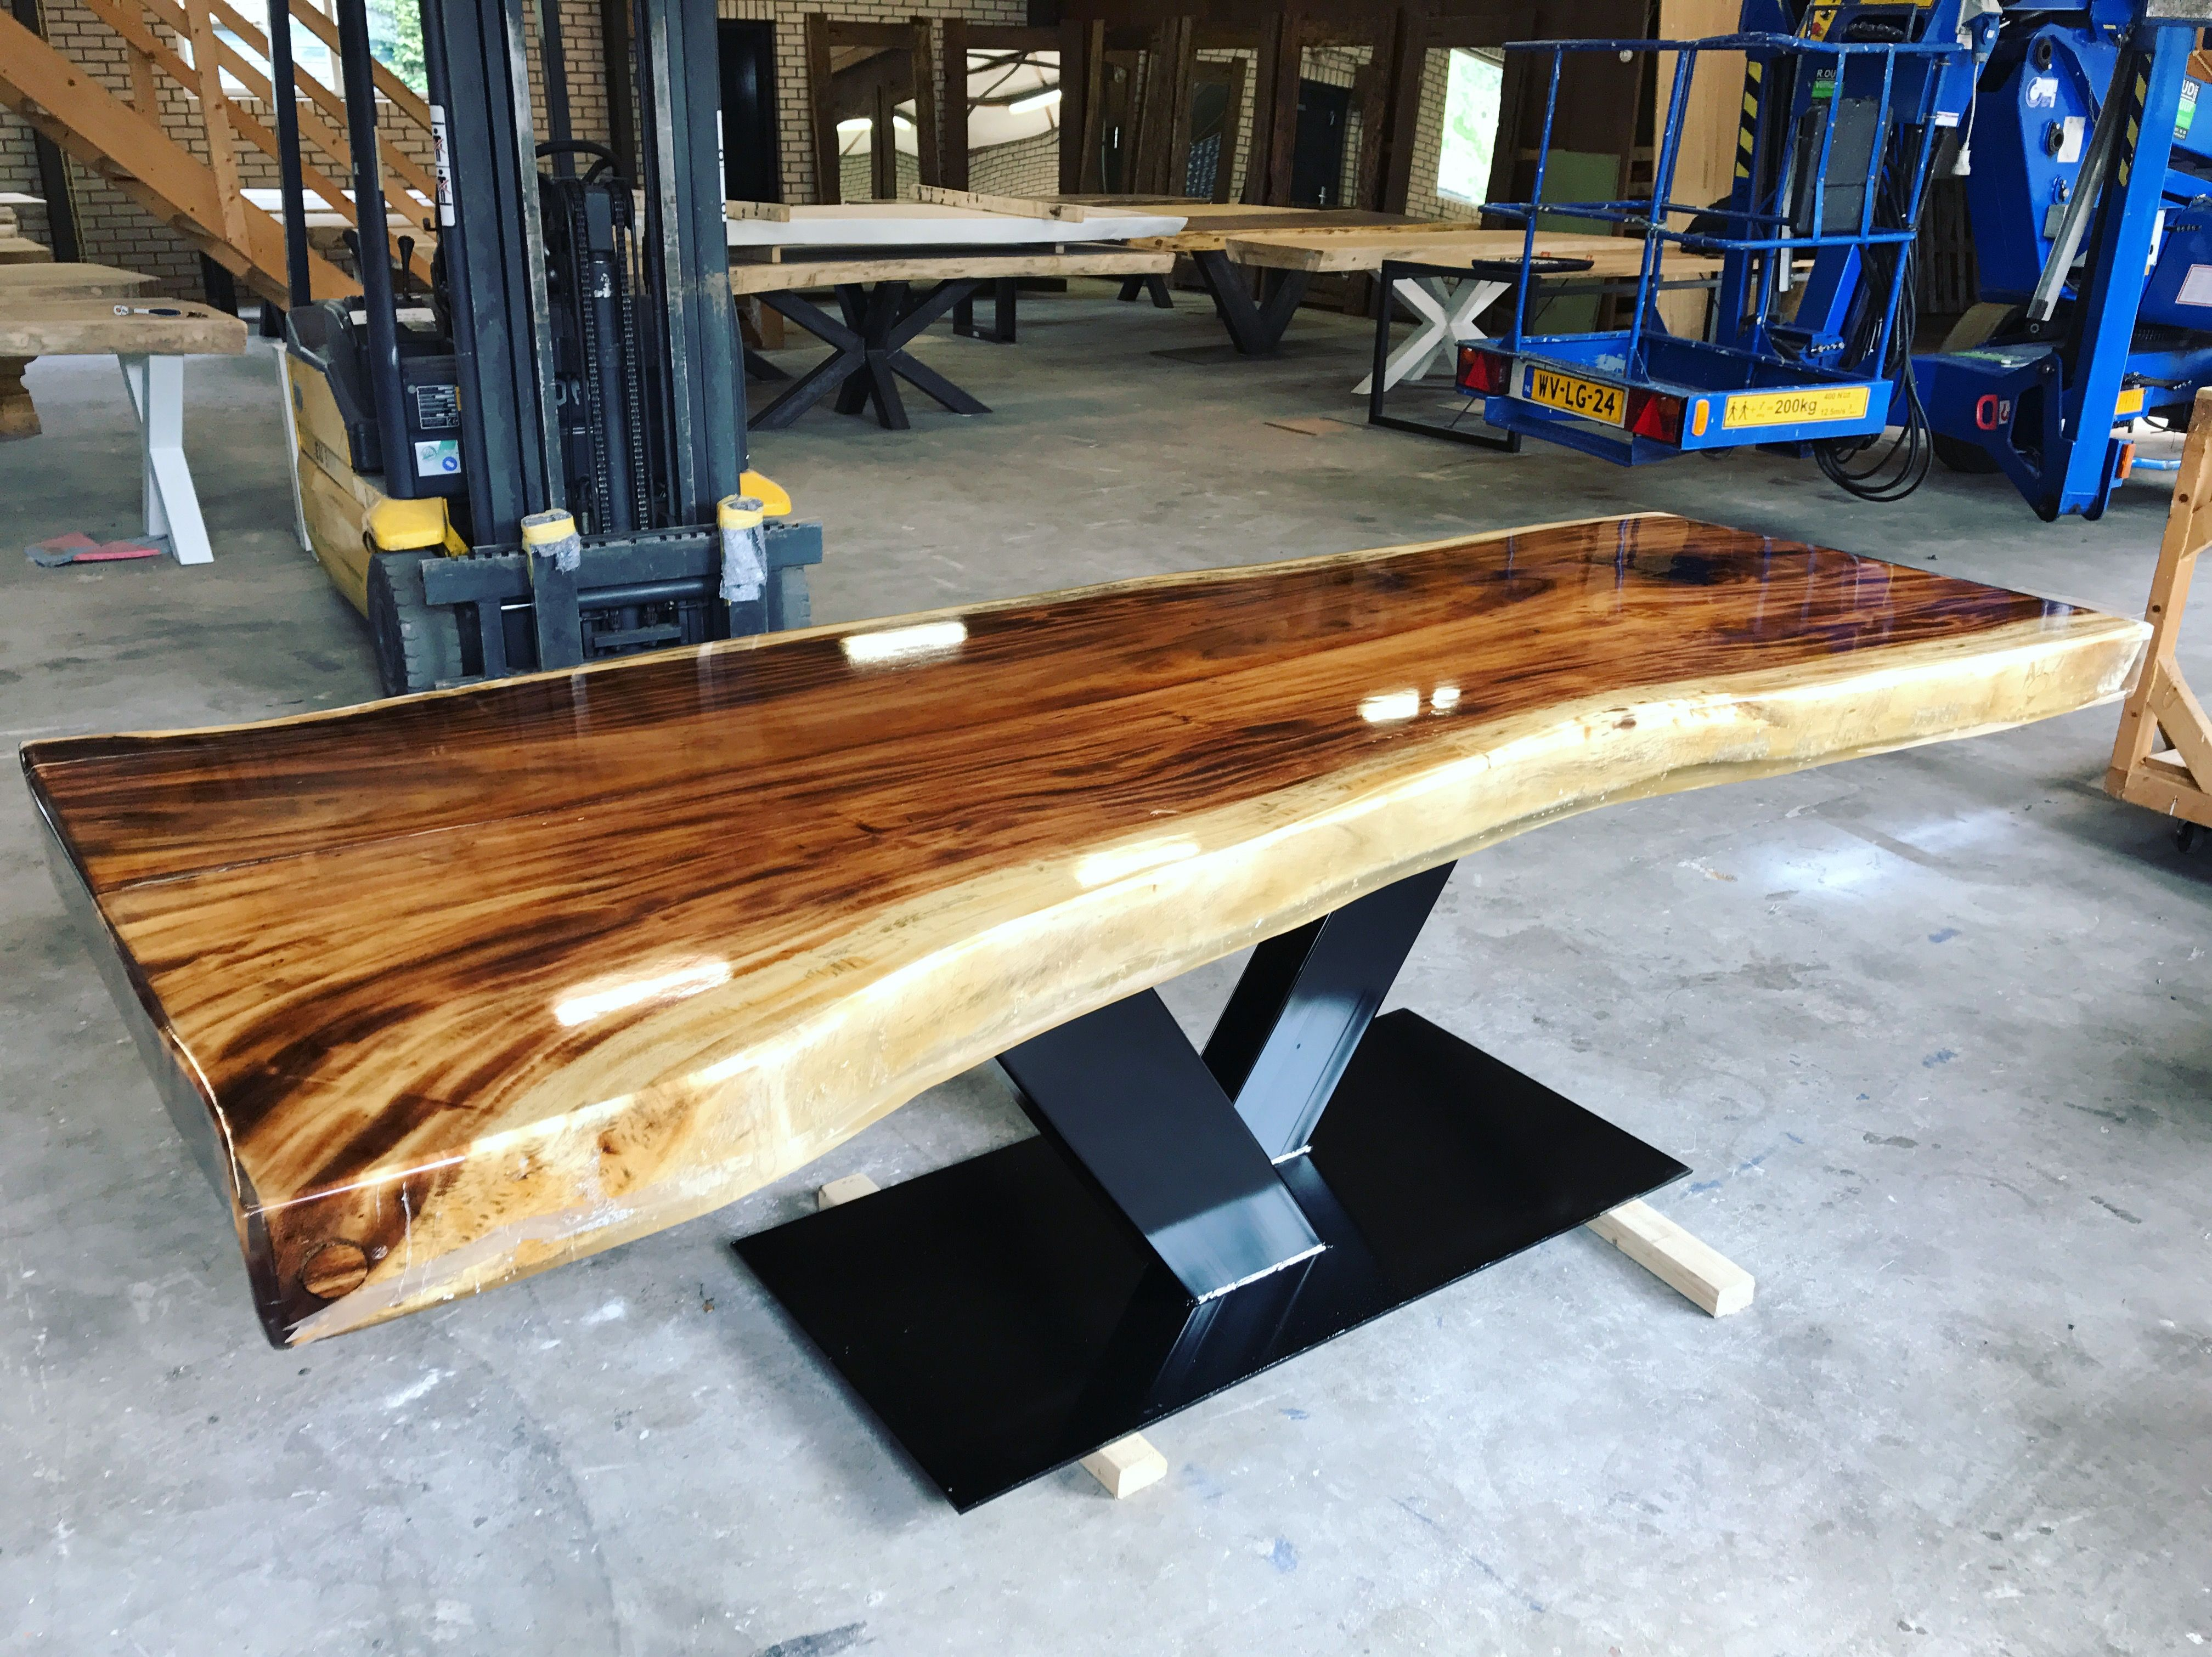 Natural Living Meubelen : Epoxy resin table suar! get yours!! 👌 by nature living meubels